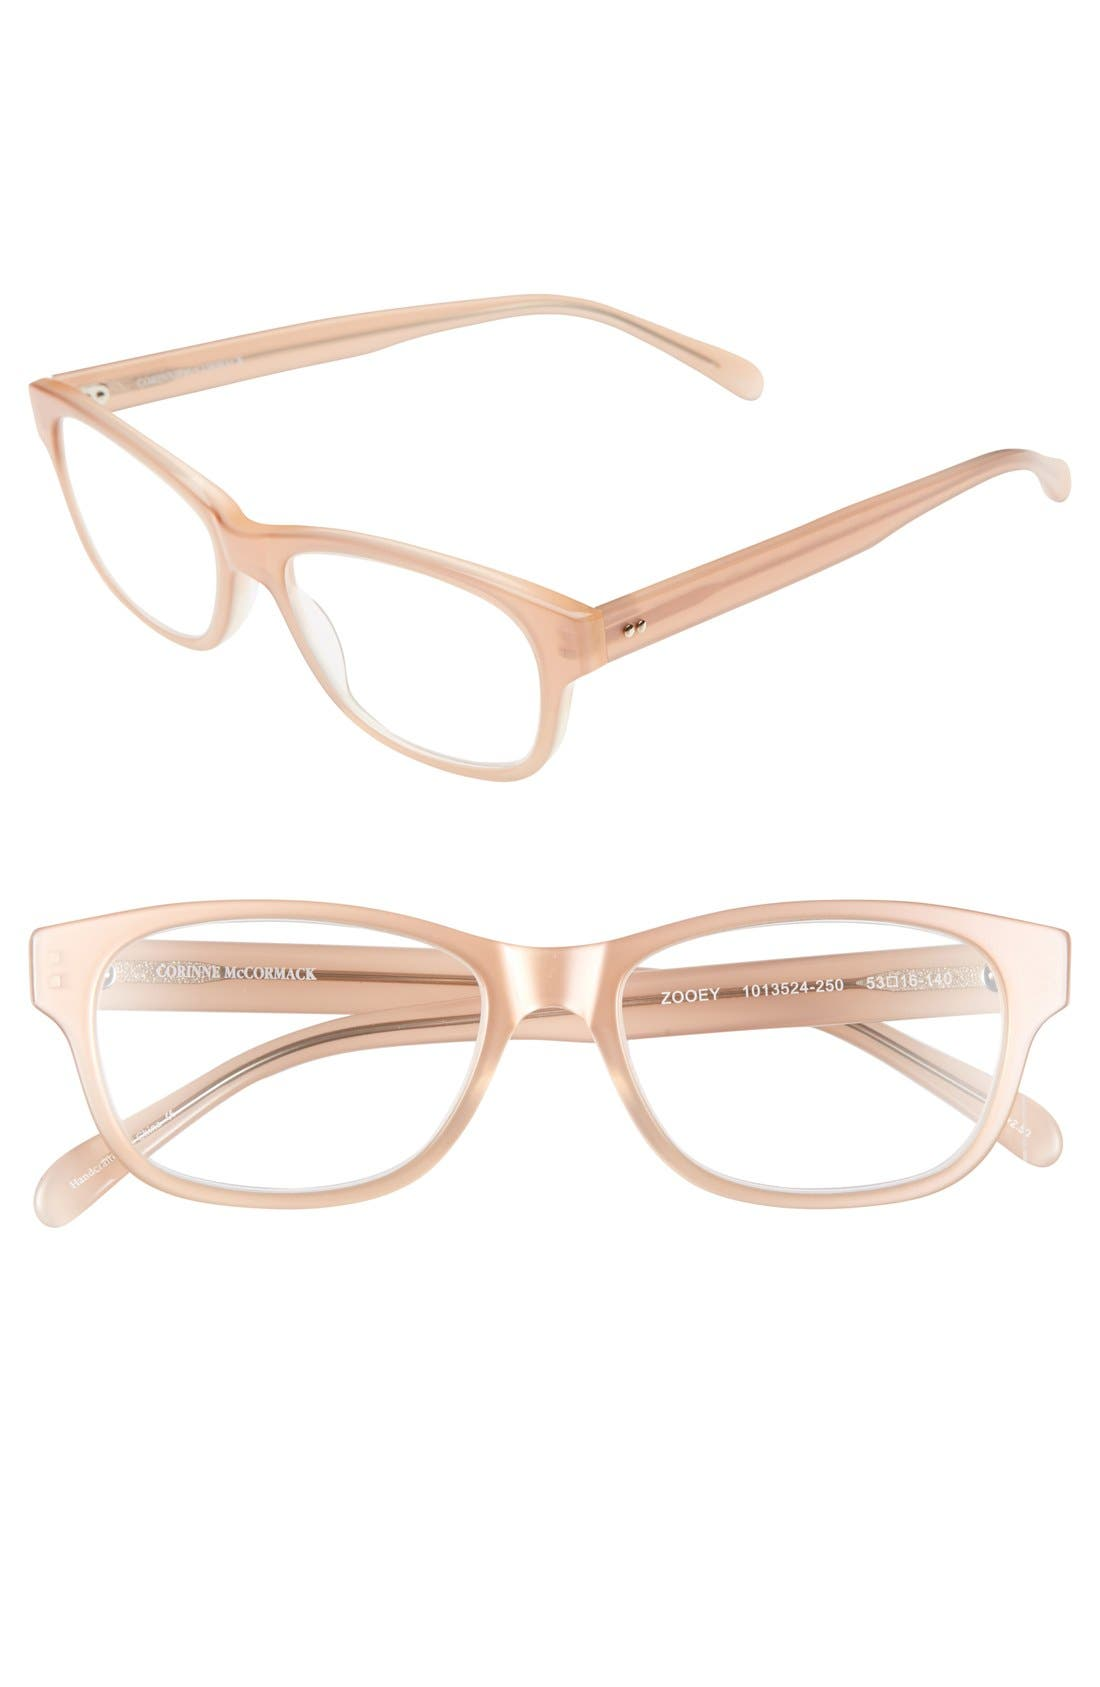 Alternate Image 1 Selected - Corinne McCormack 'Zooey' 53mm Reading Glasses (2 for $88)